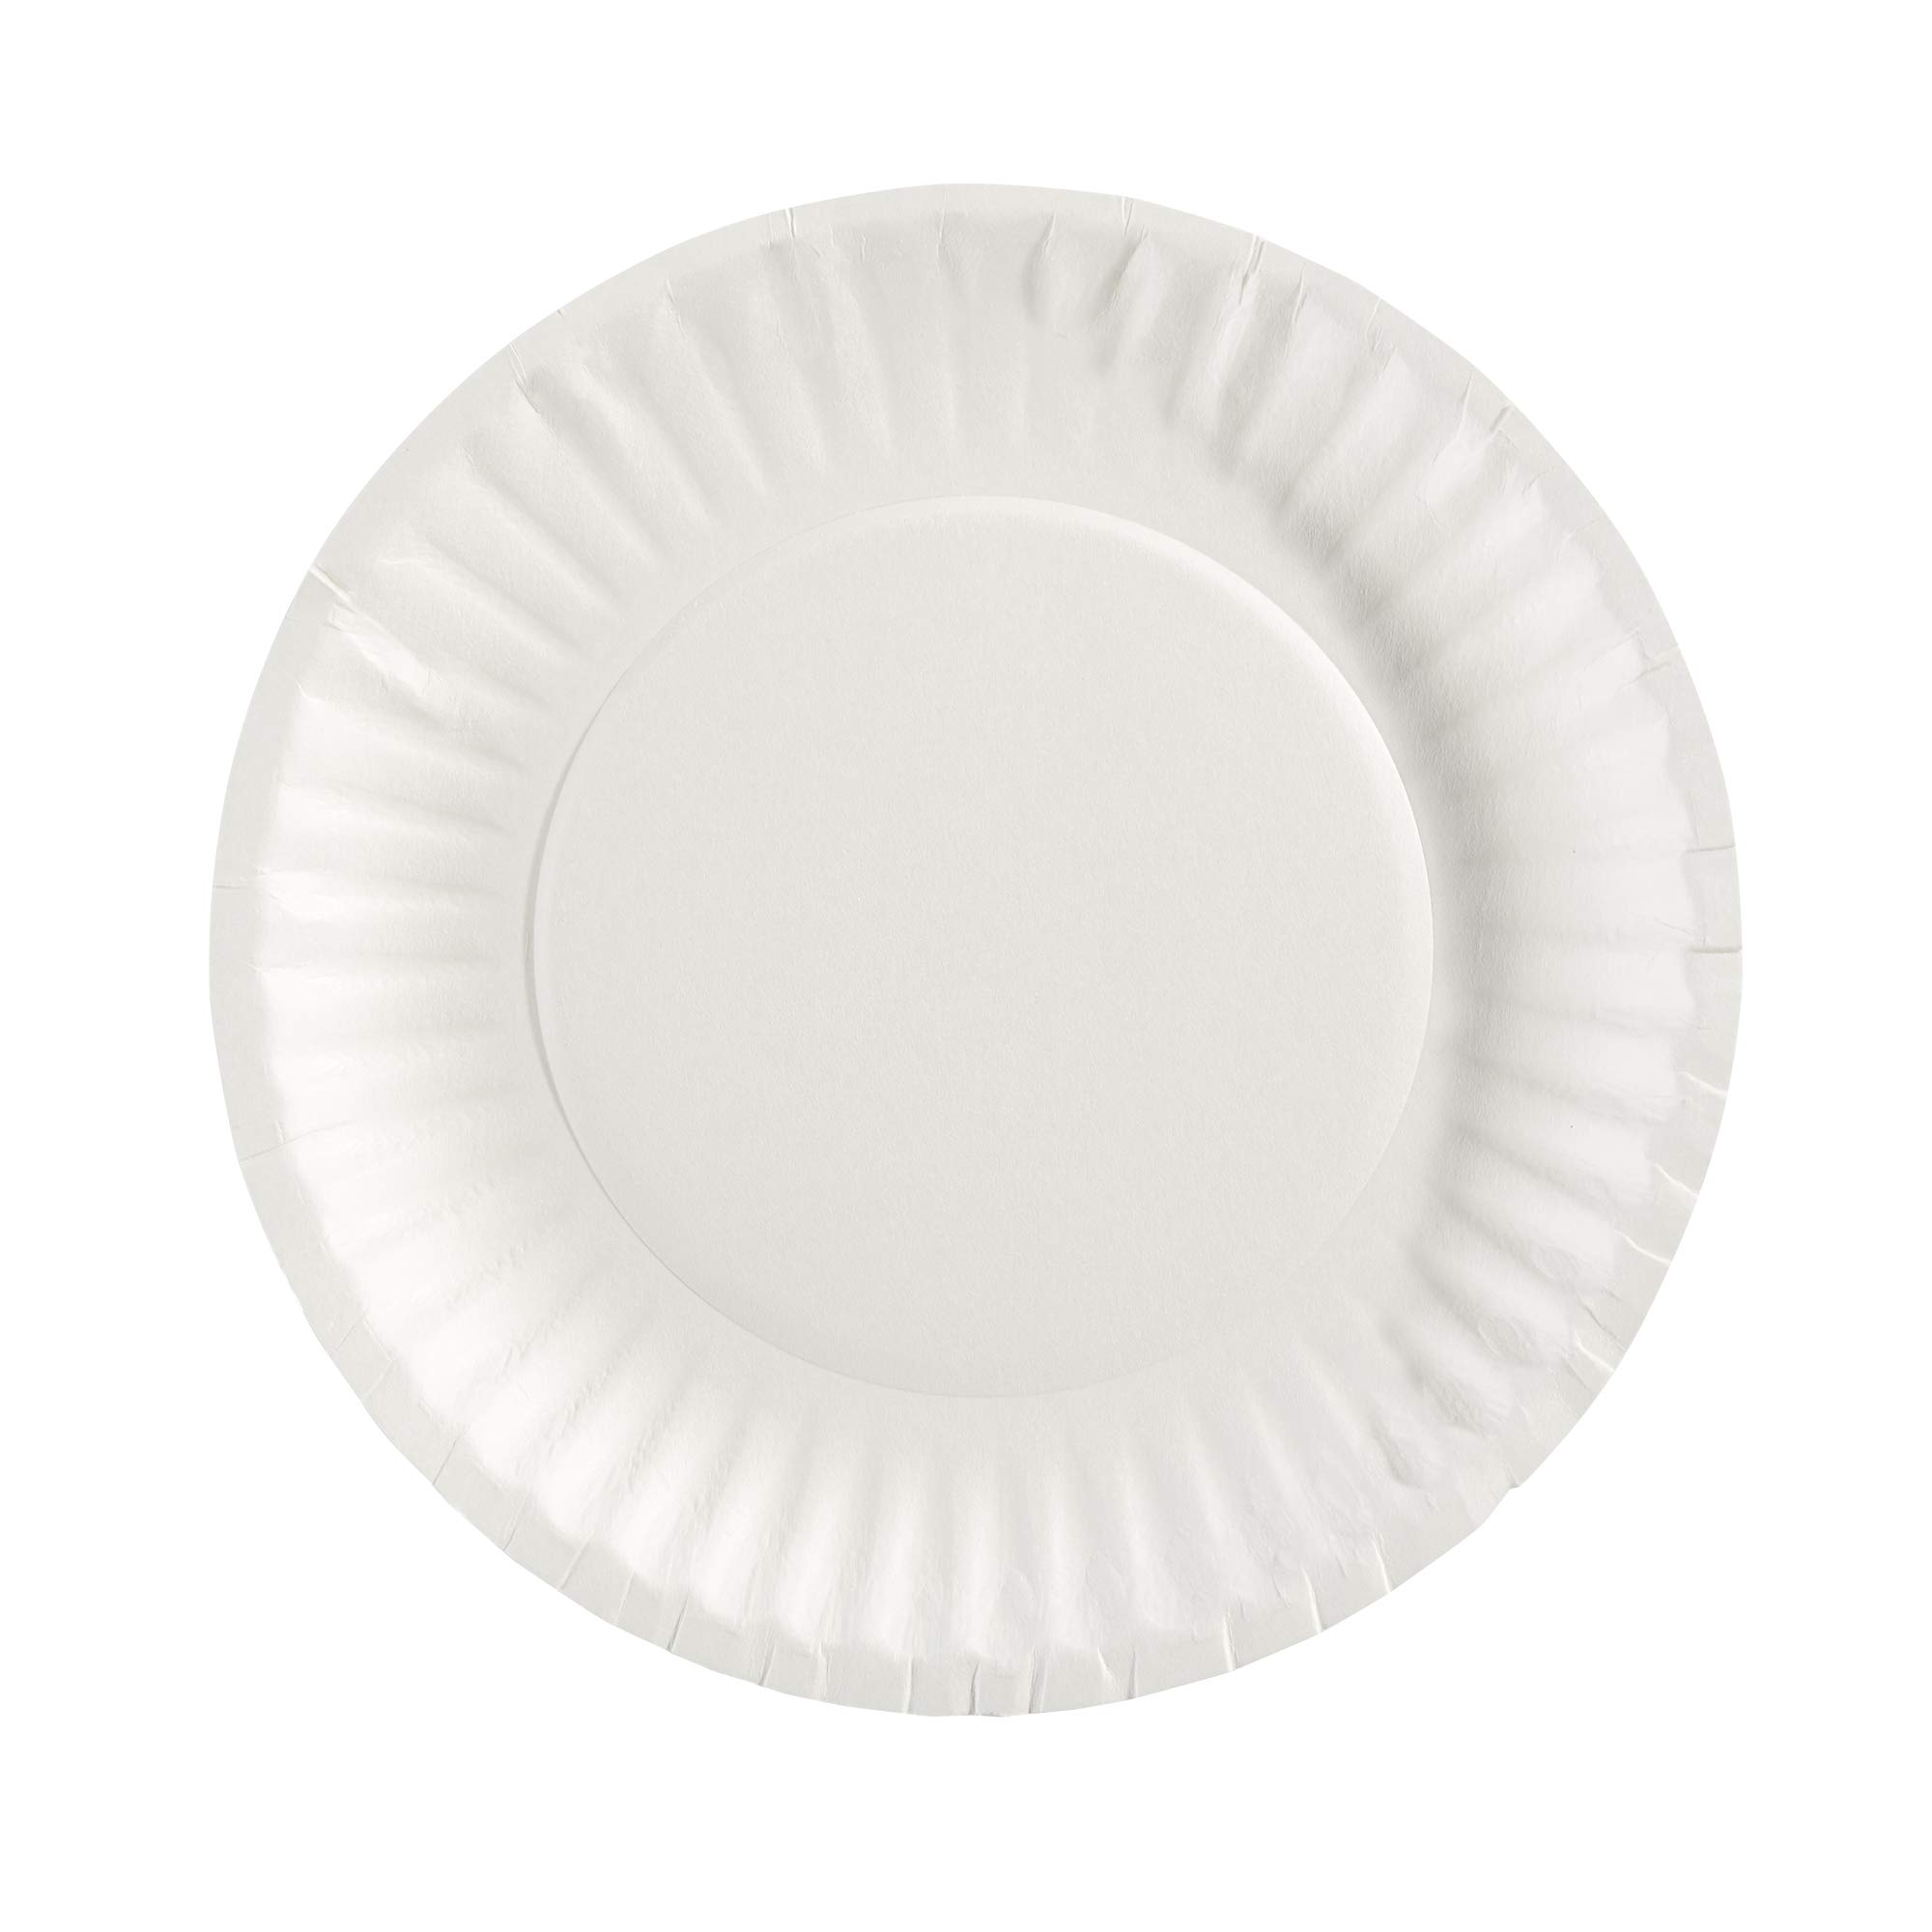 Dixie 6in Light-Weight Paper Plates by GP PRO (Georgia-Pacific), White, 702622WNP6, 1,000 Count (500 Plates Per Pack, 2 Packs Per Case)